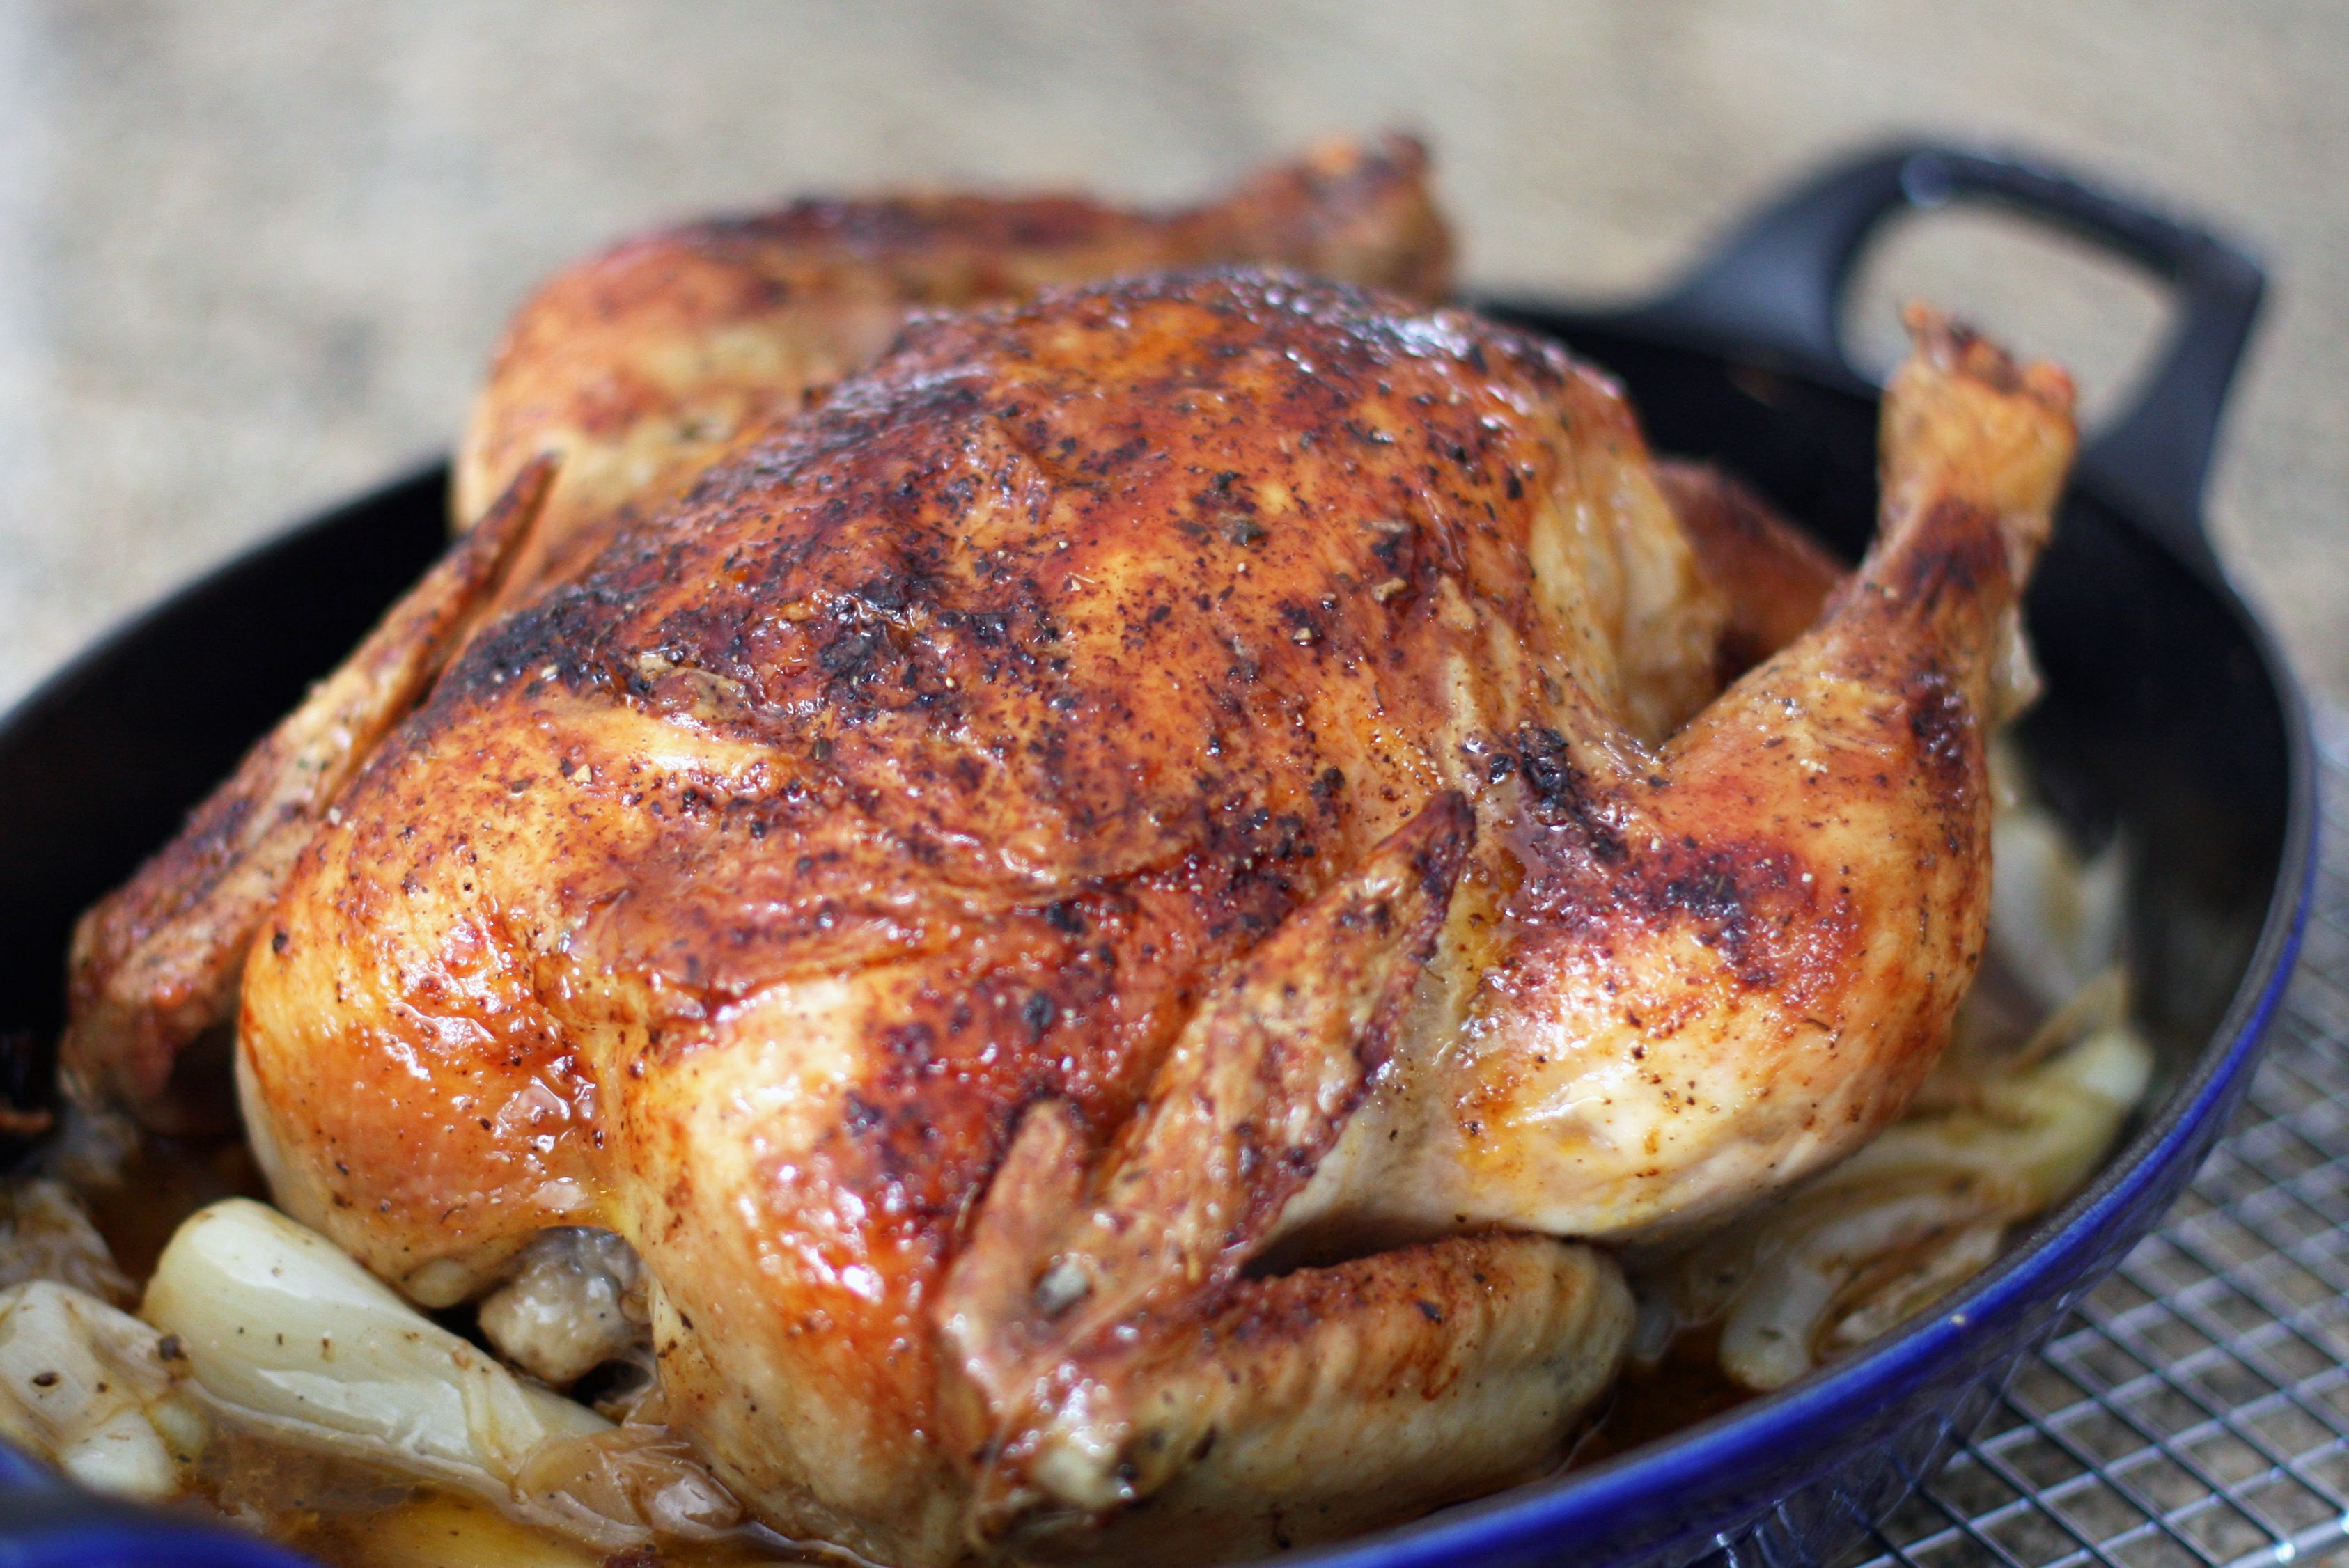 Roast chicken with herbs and garlic.